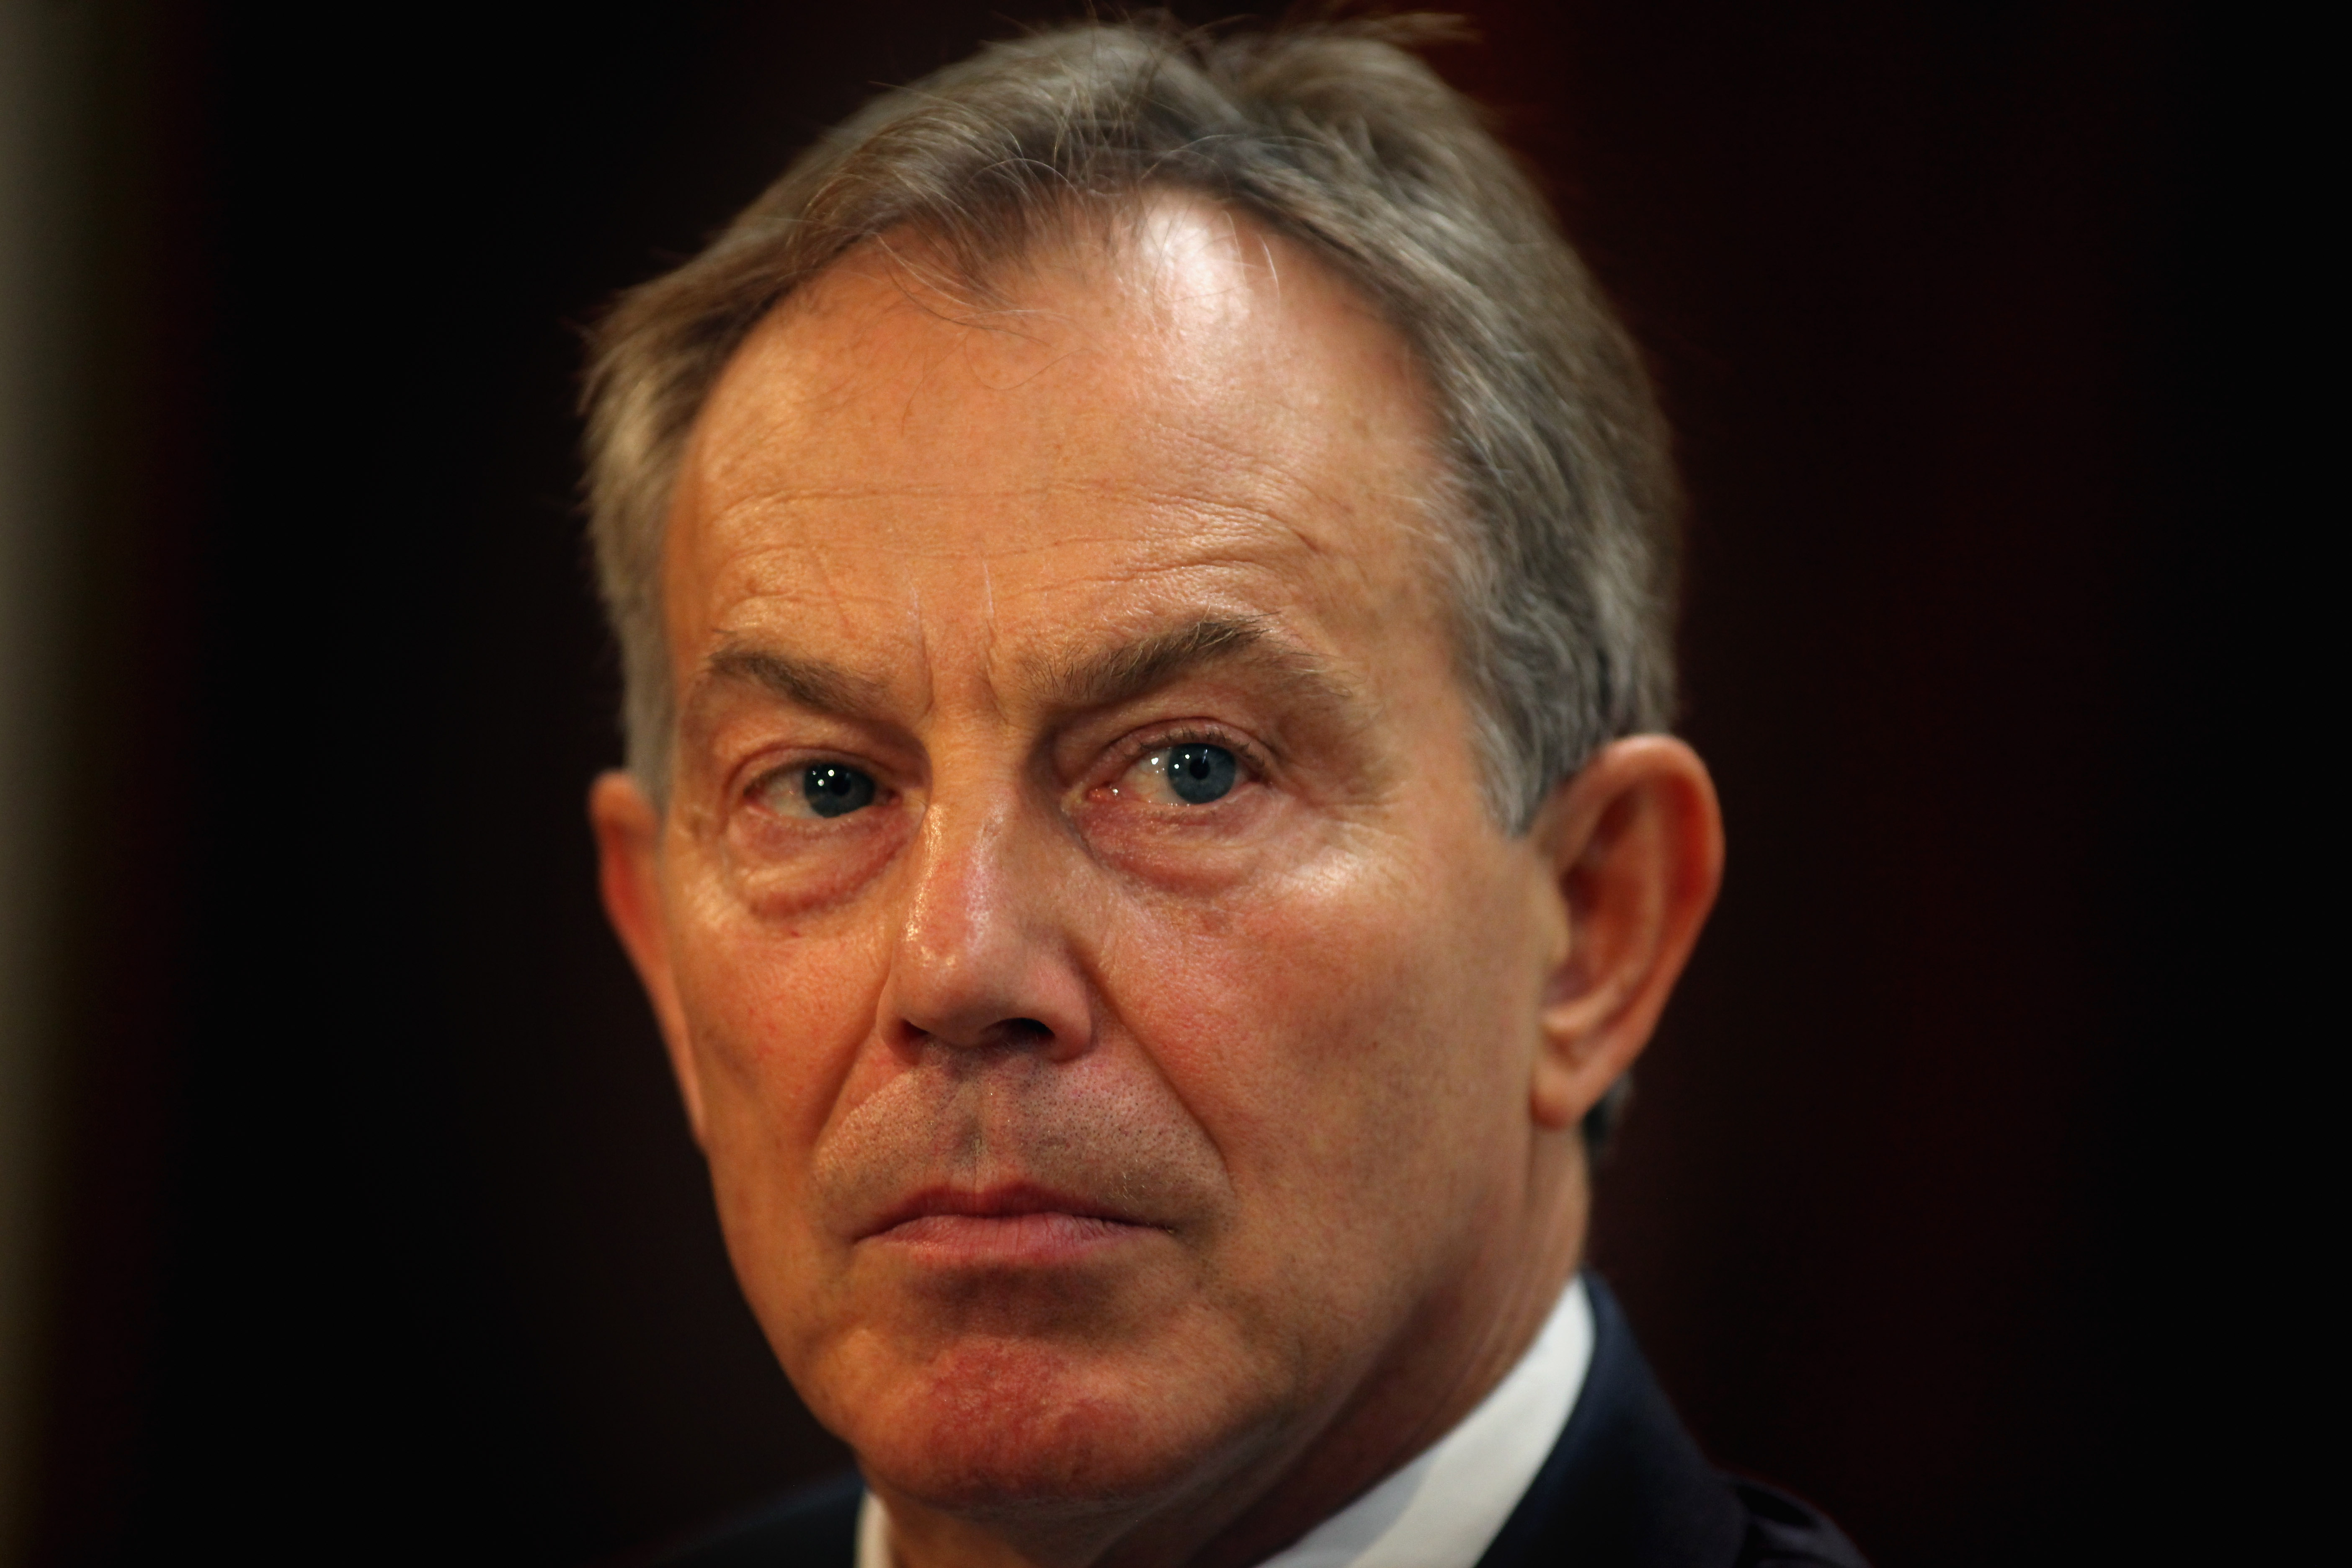 Former Prime Minister Tony Blair in 2011